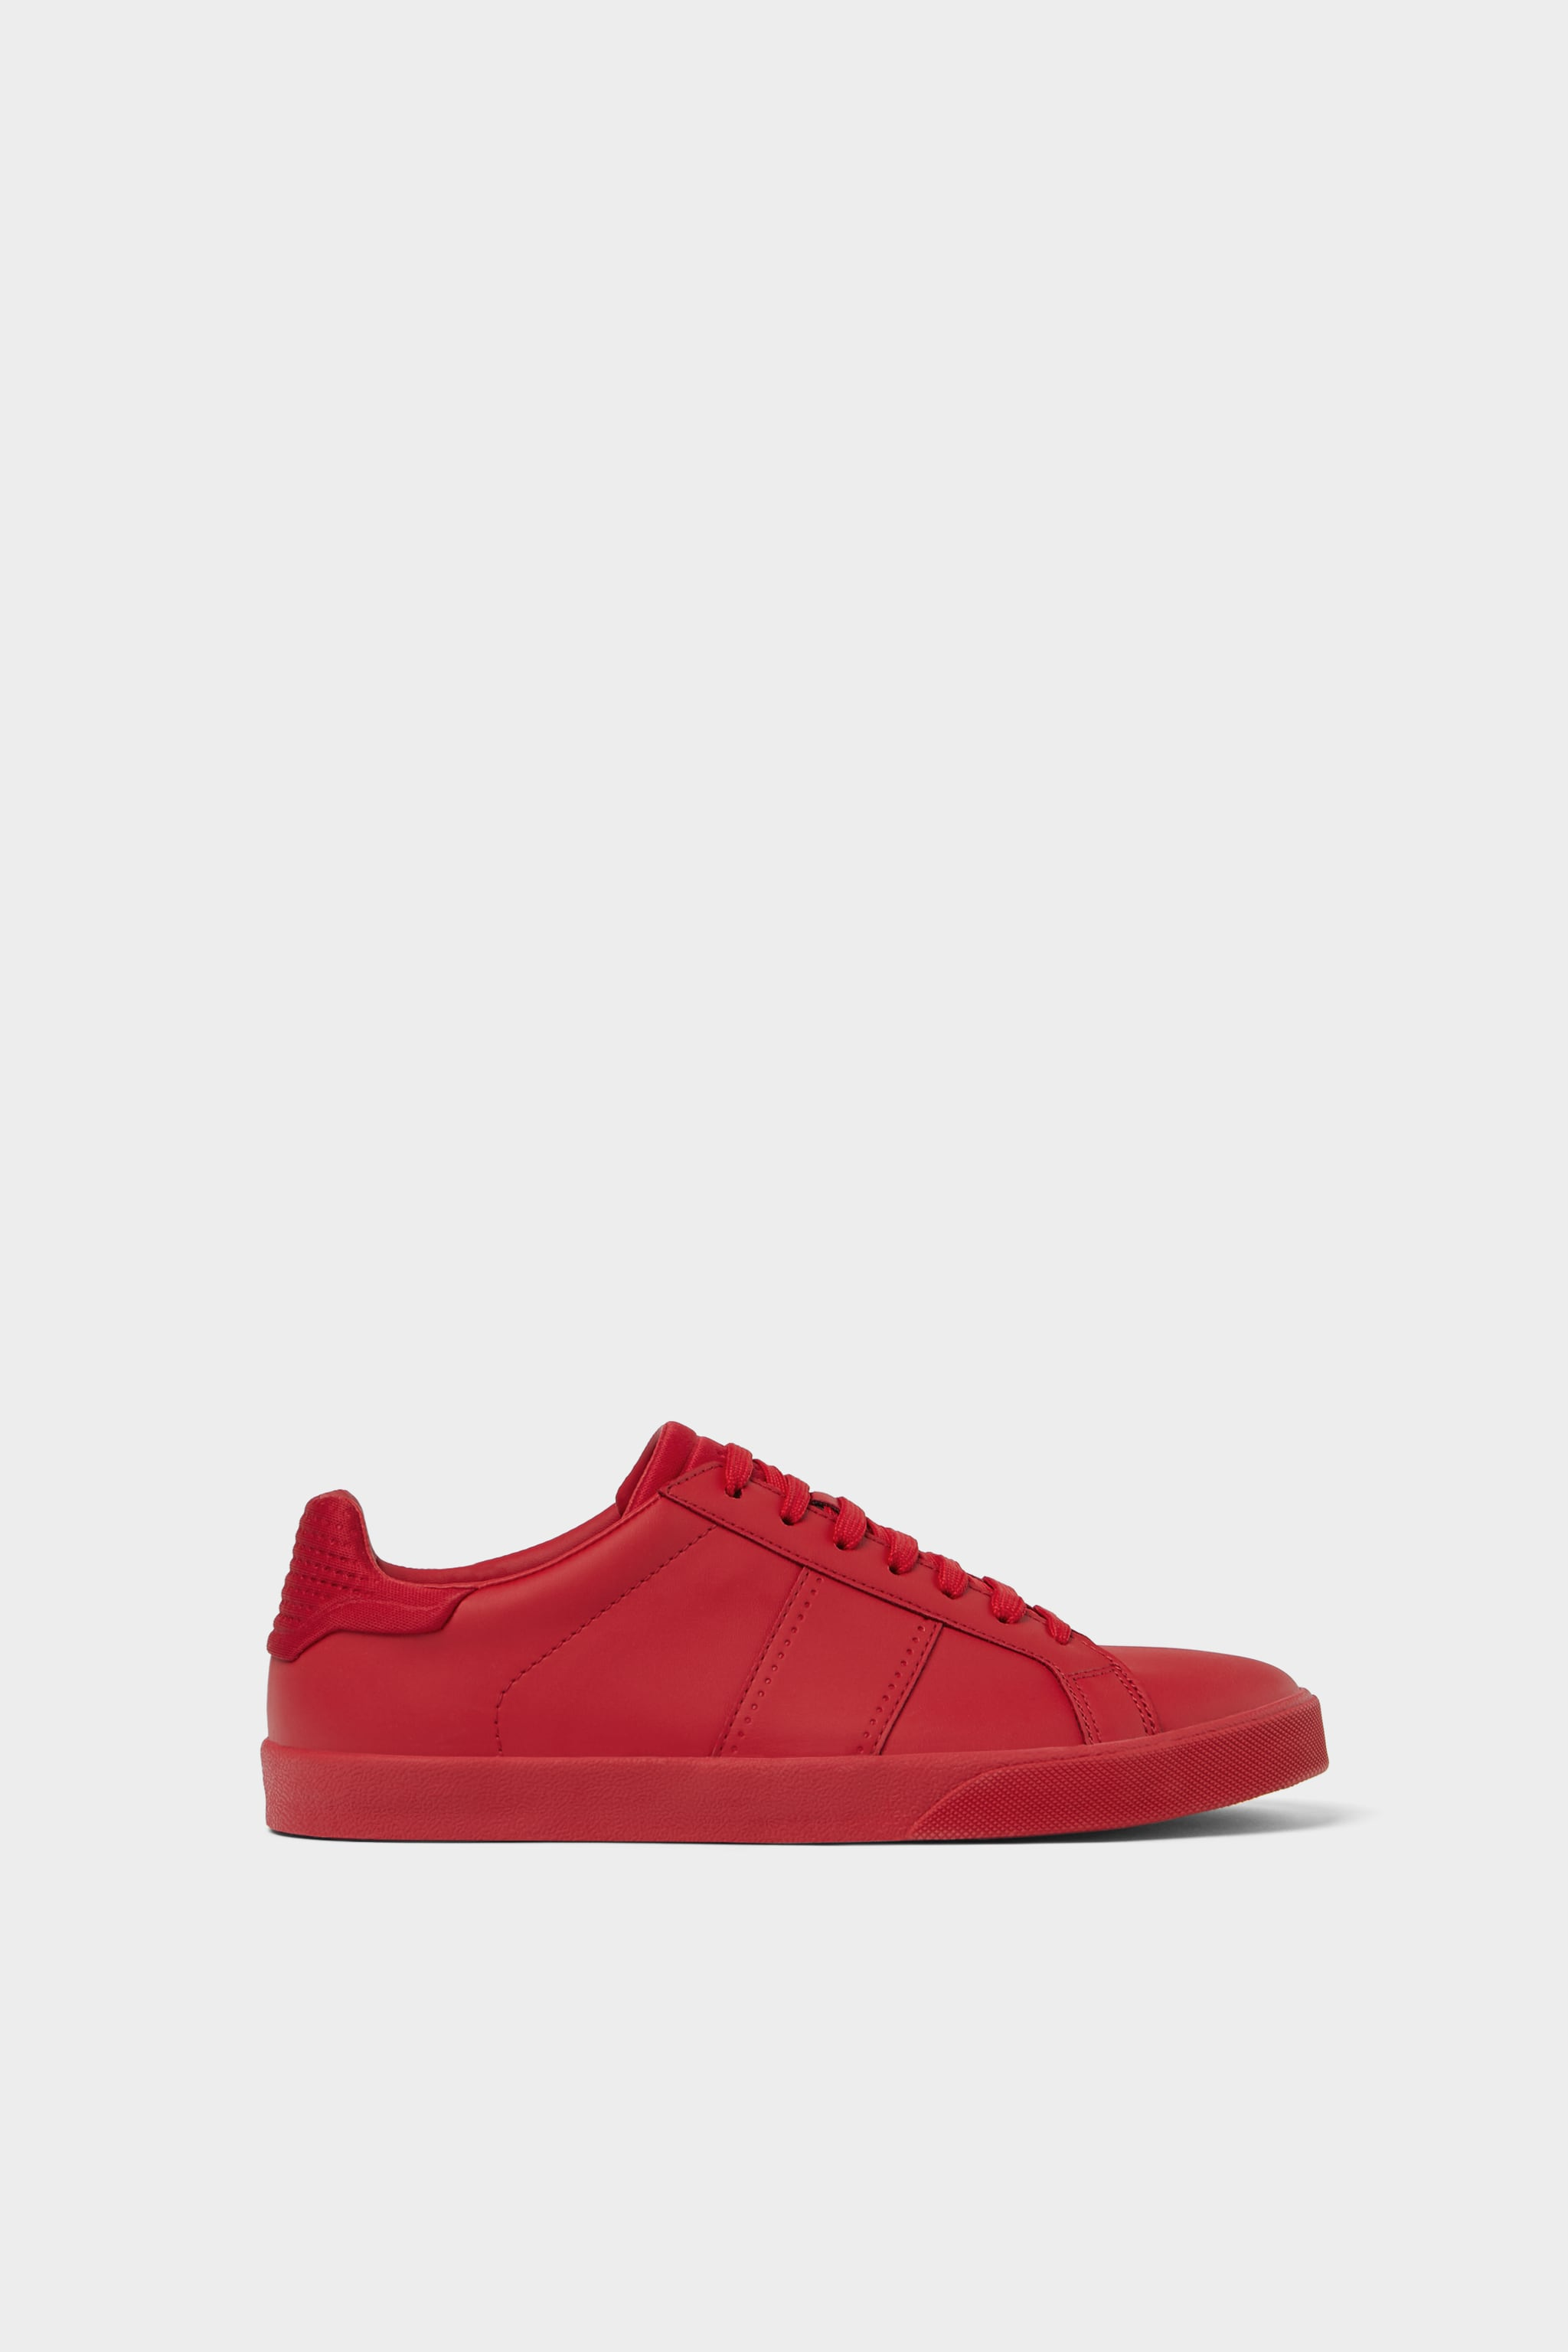 Zara QUILTED RED SNEAKERS 0bc400d2c73